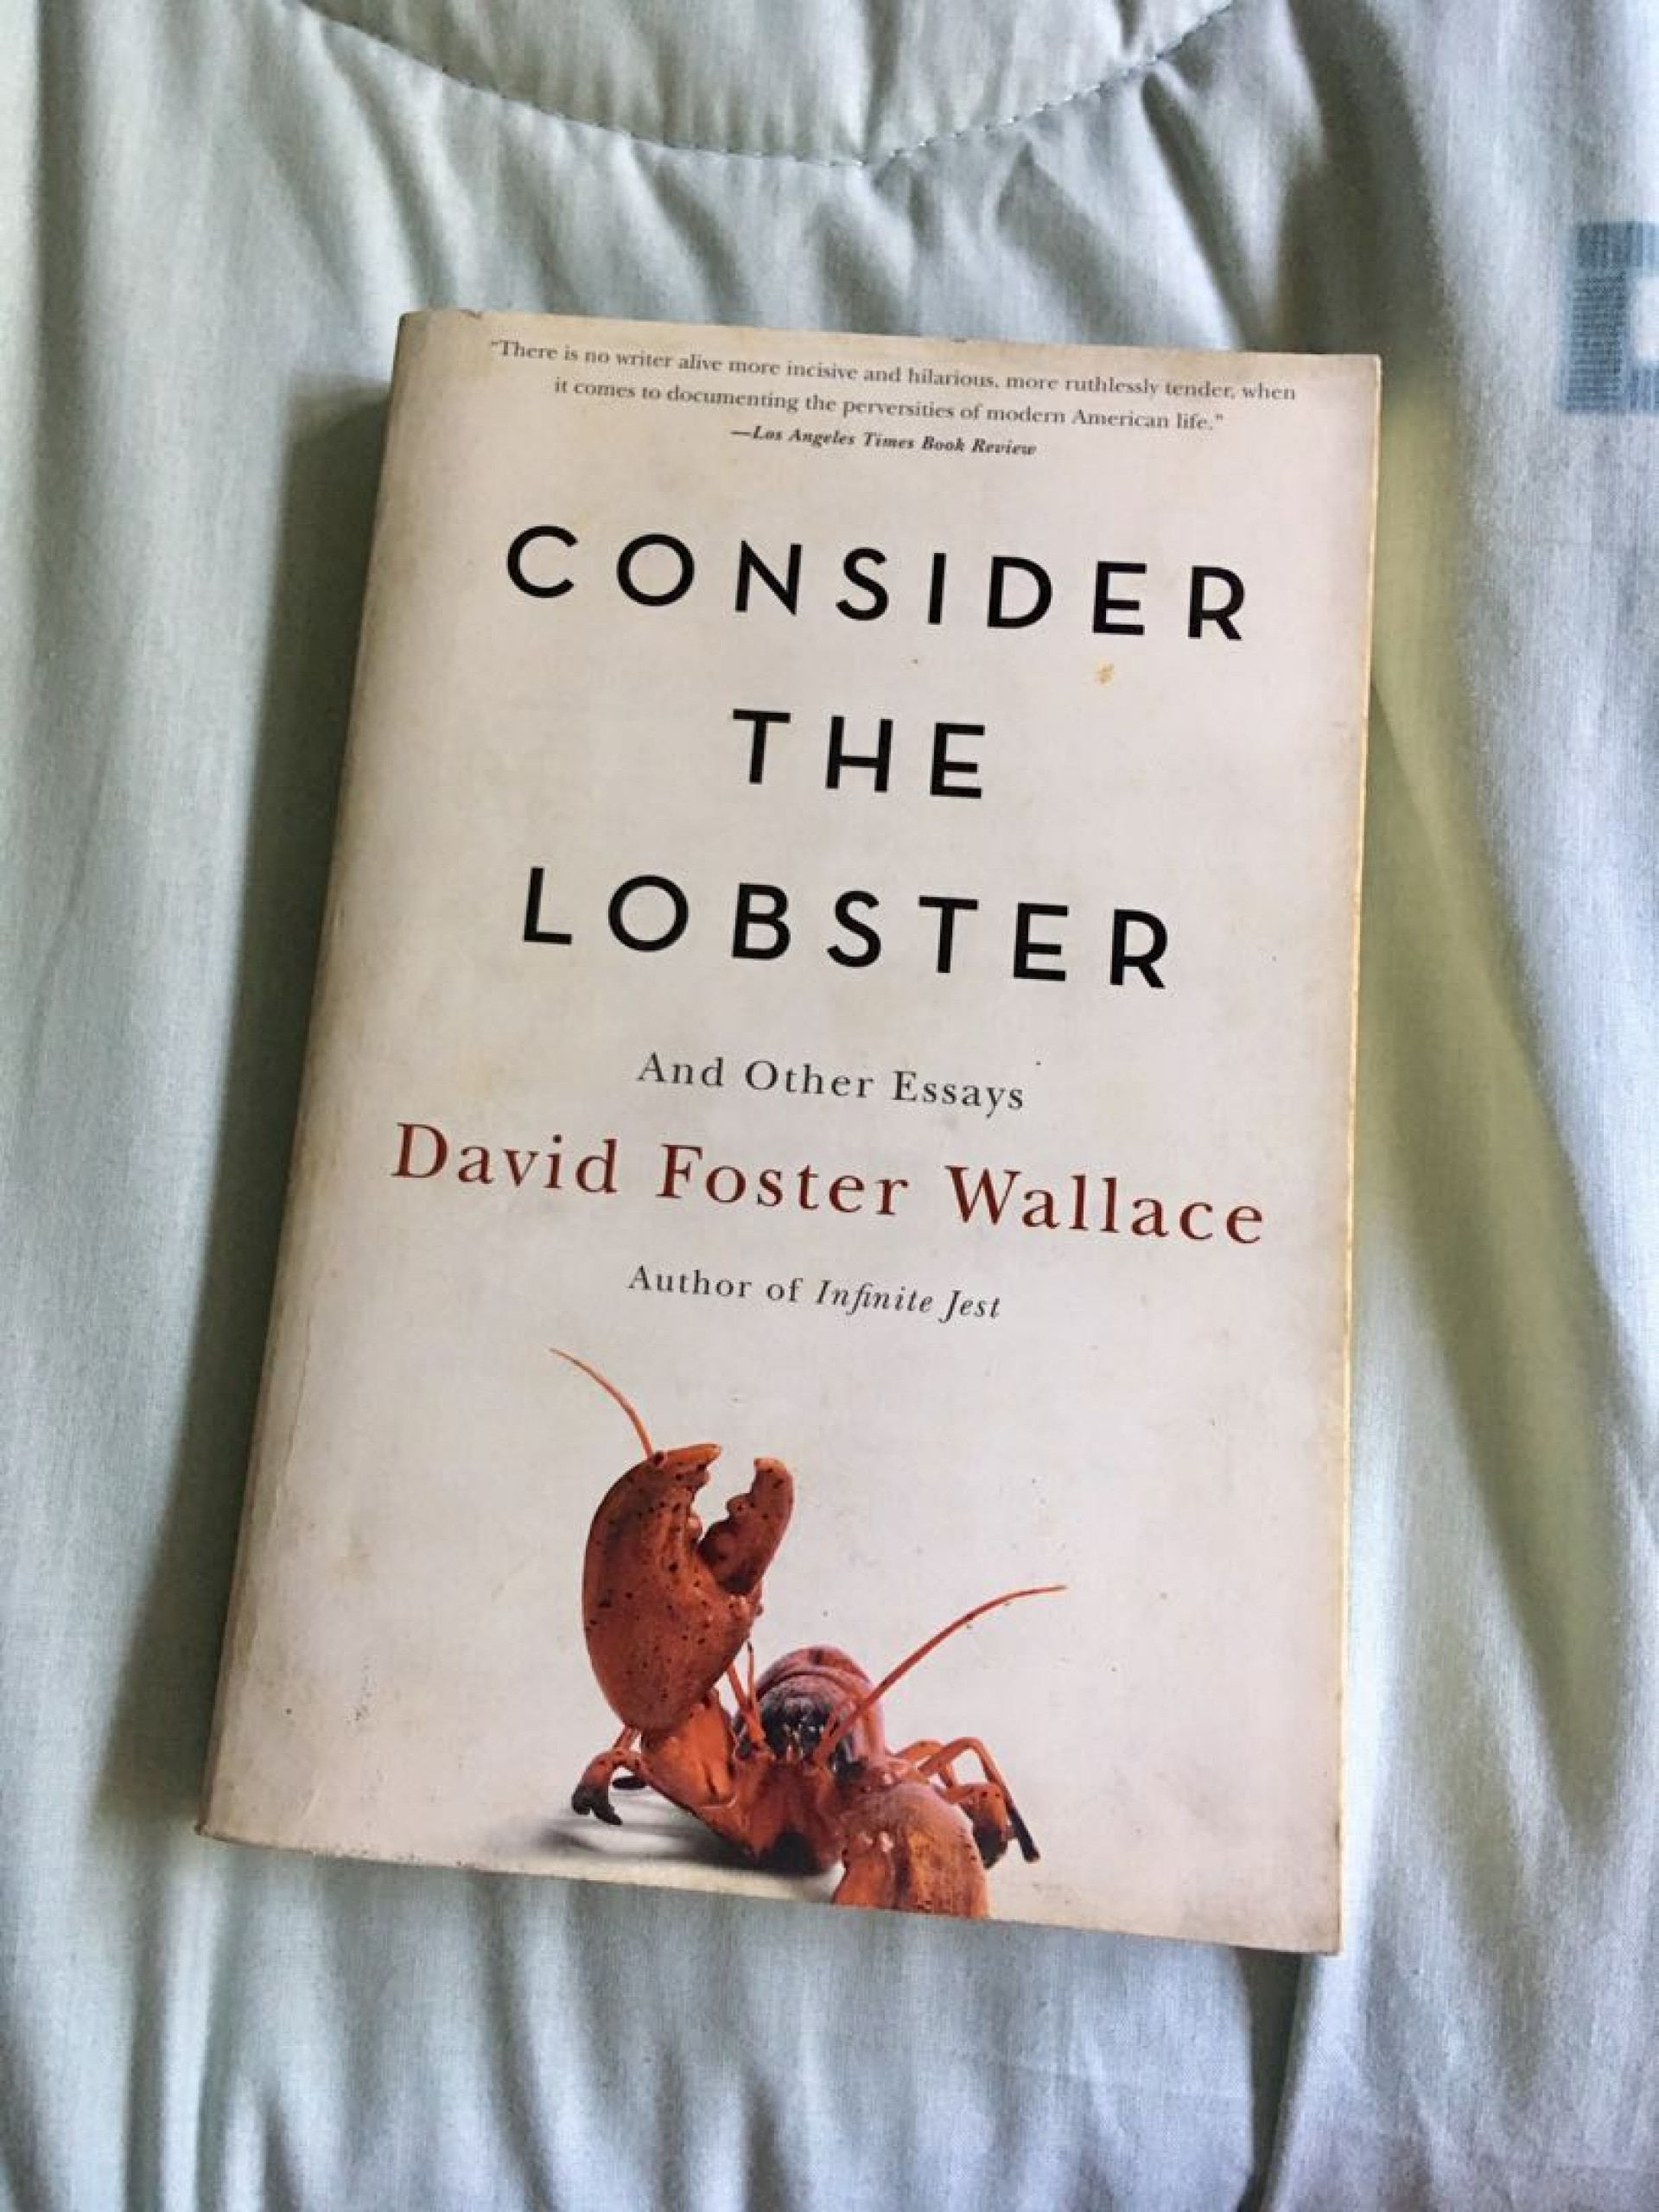 019 Consider The Lobster Essay Example By David Foster Wallace 1522206669 D4e499d5 Exceptional Rhetorical Analysis And Other Essays Summary 1920